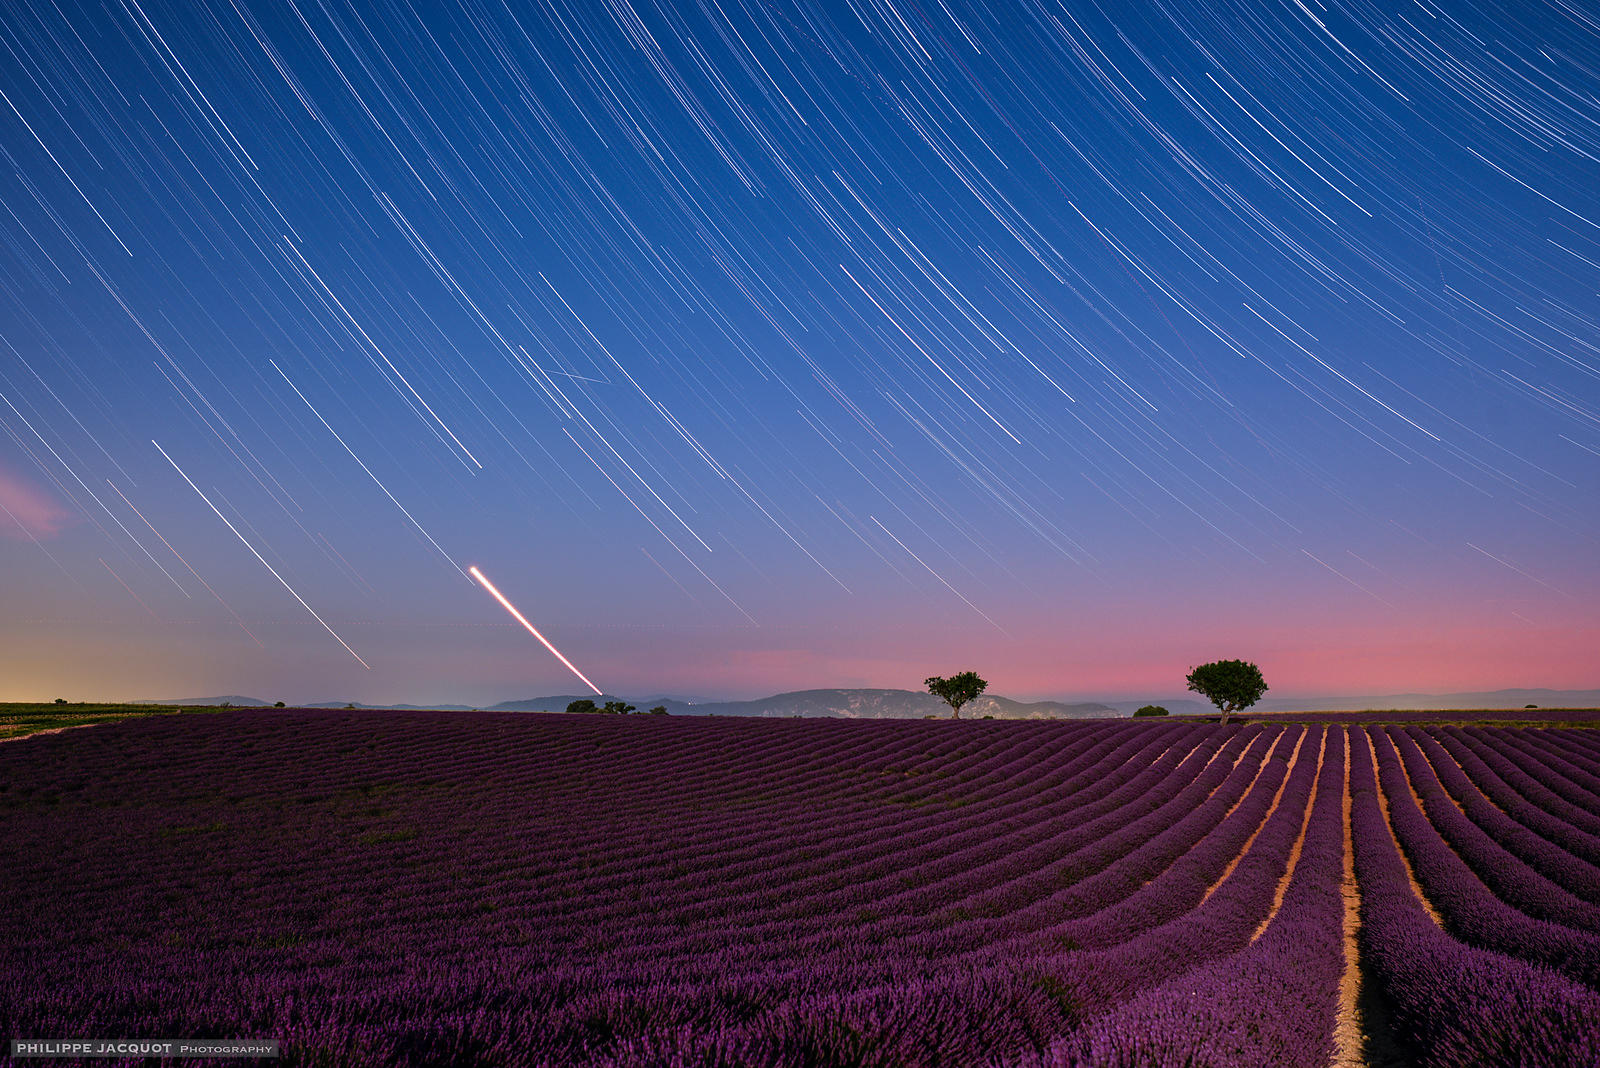 Venus setting over lavender fields - Valensole - Alpes Haute Provence